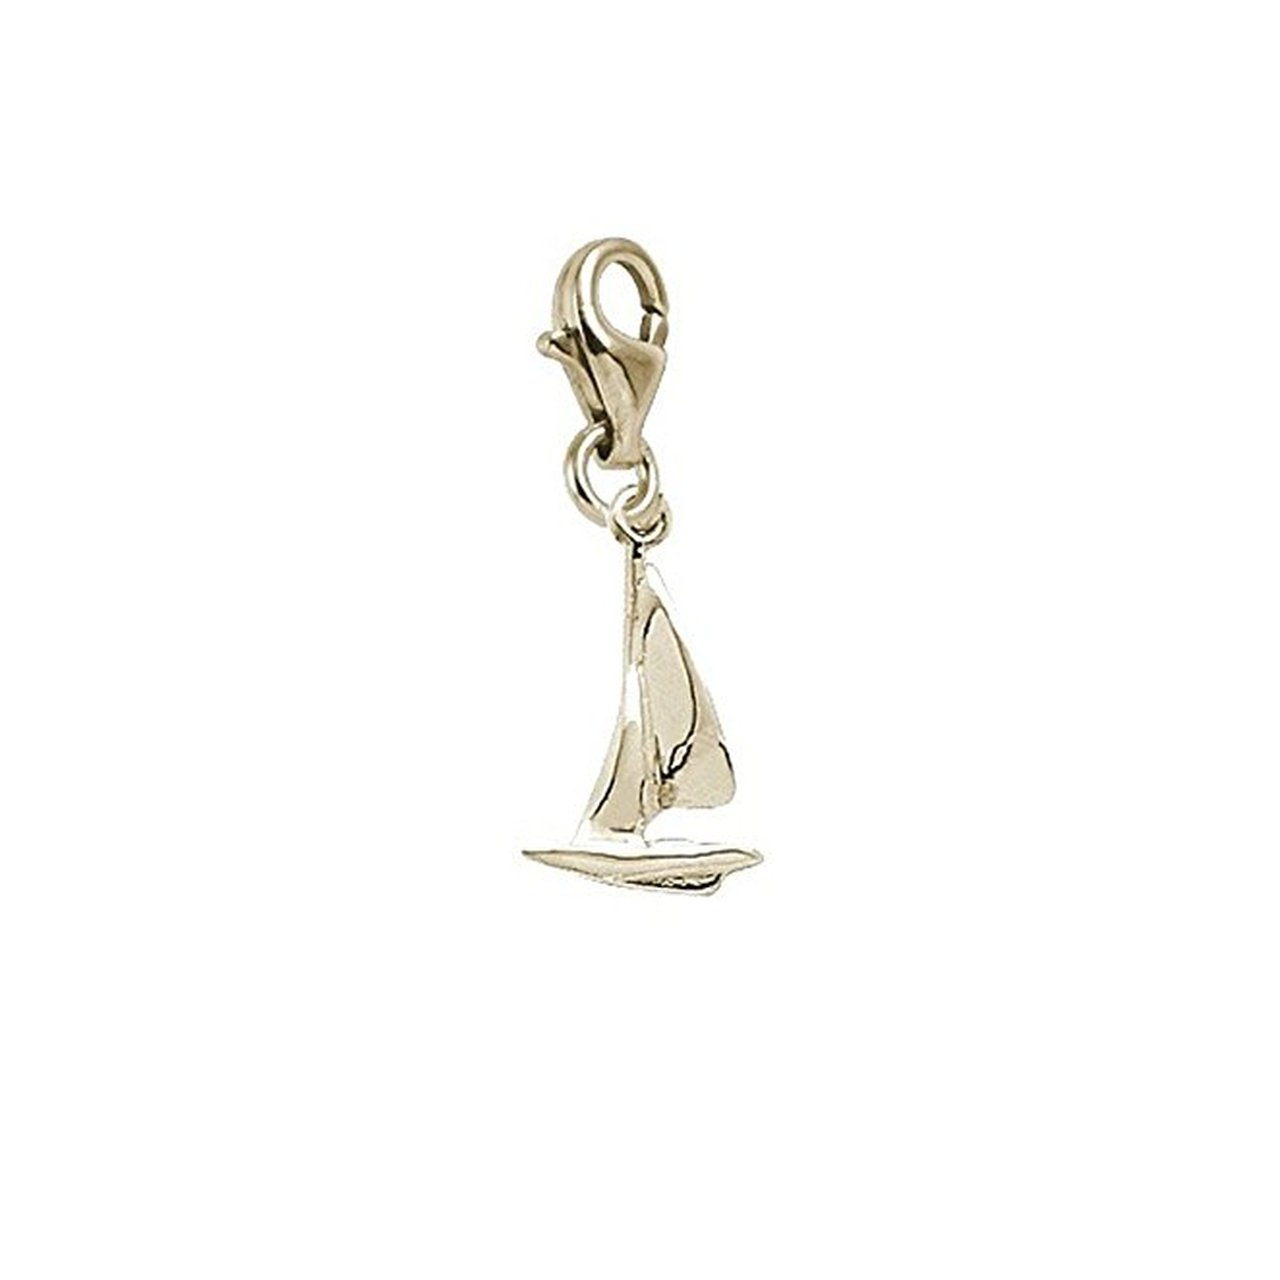 Charms for Bracelets and Necklaces Sailboat Charm With Lobster Claw Clasp